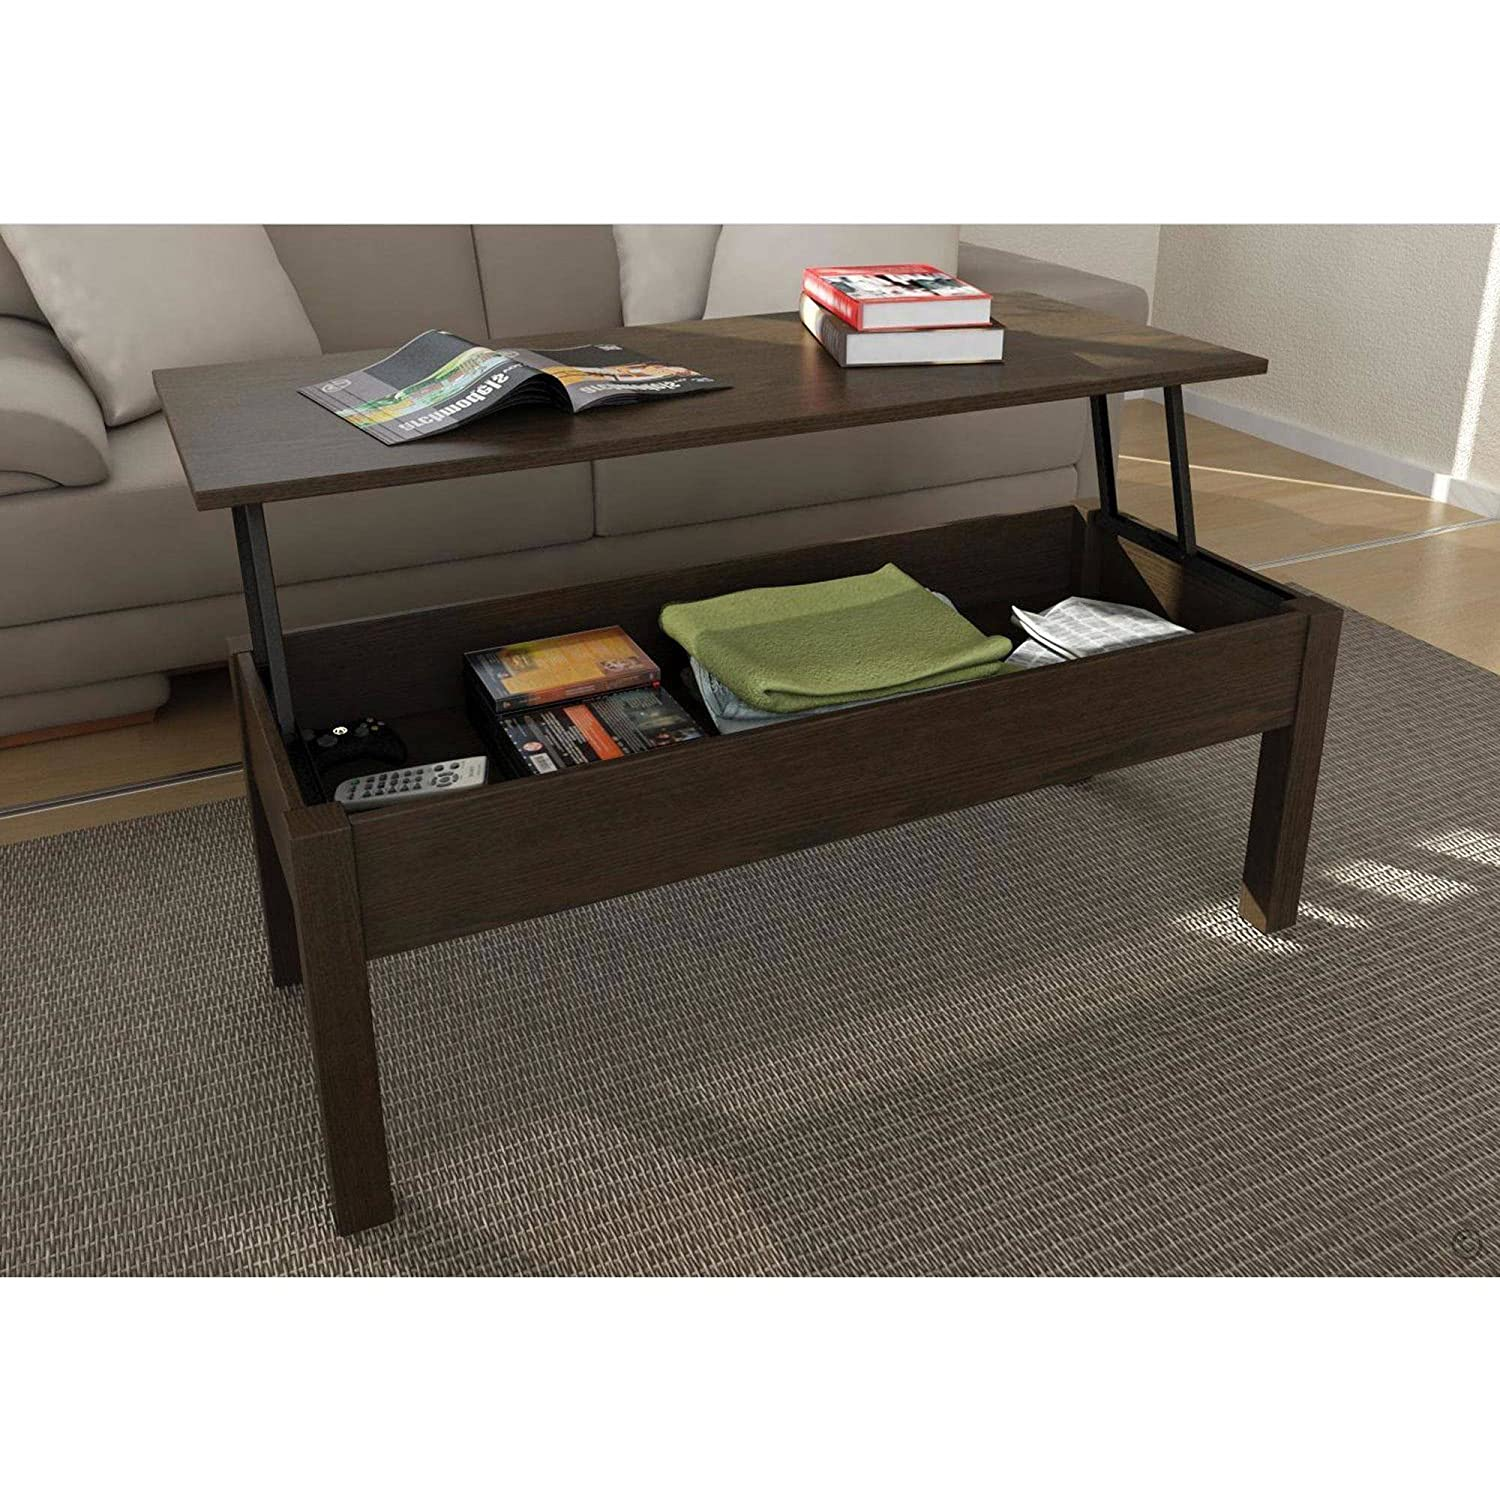 Mainstays Lift Top Coffee Table // Color: Espresso